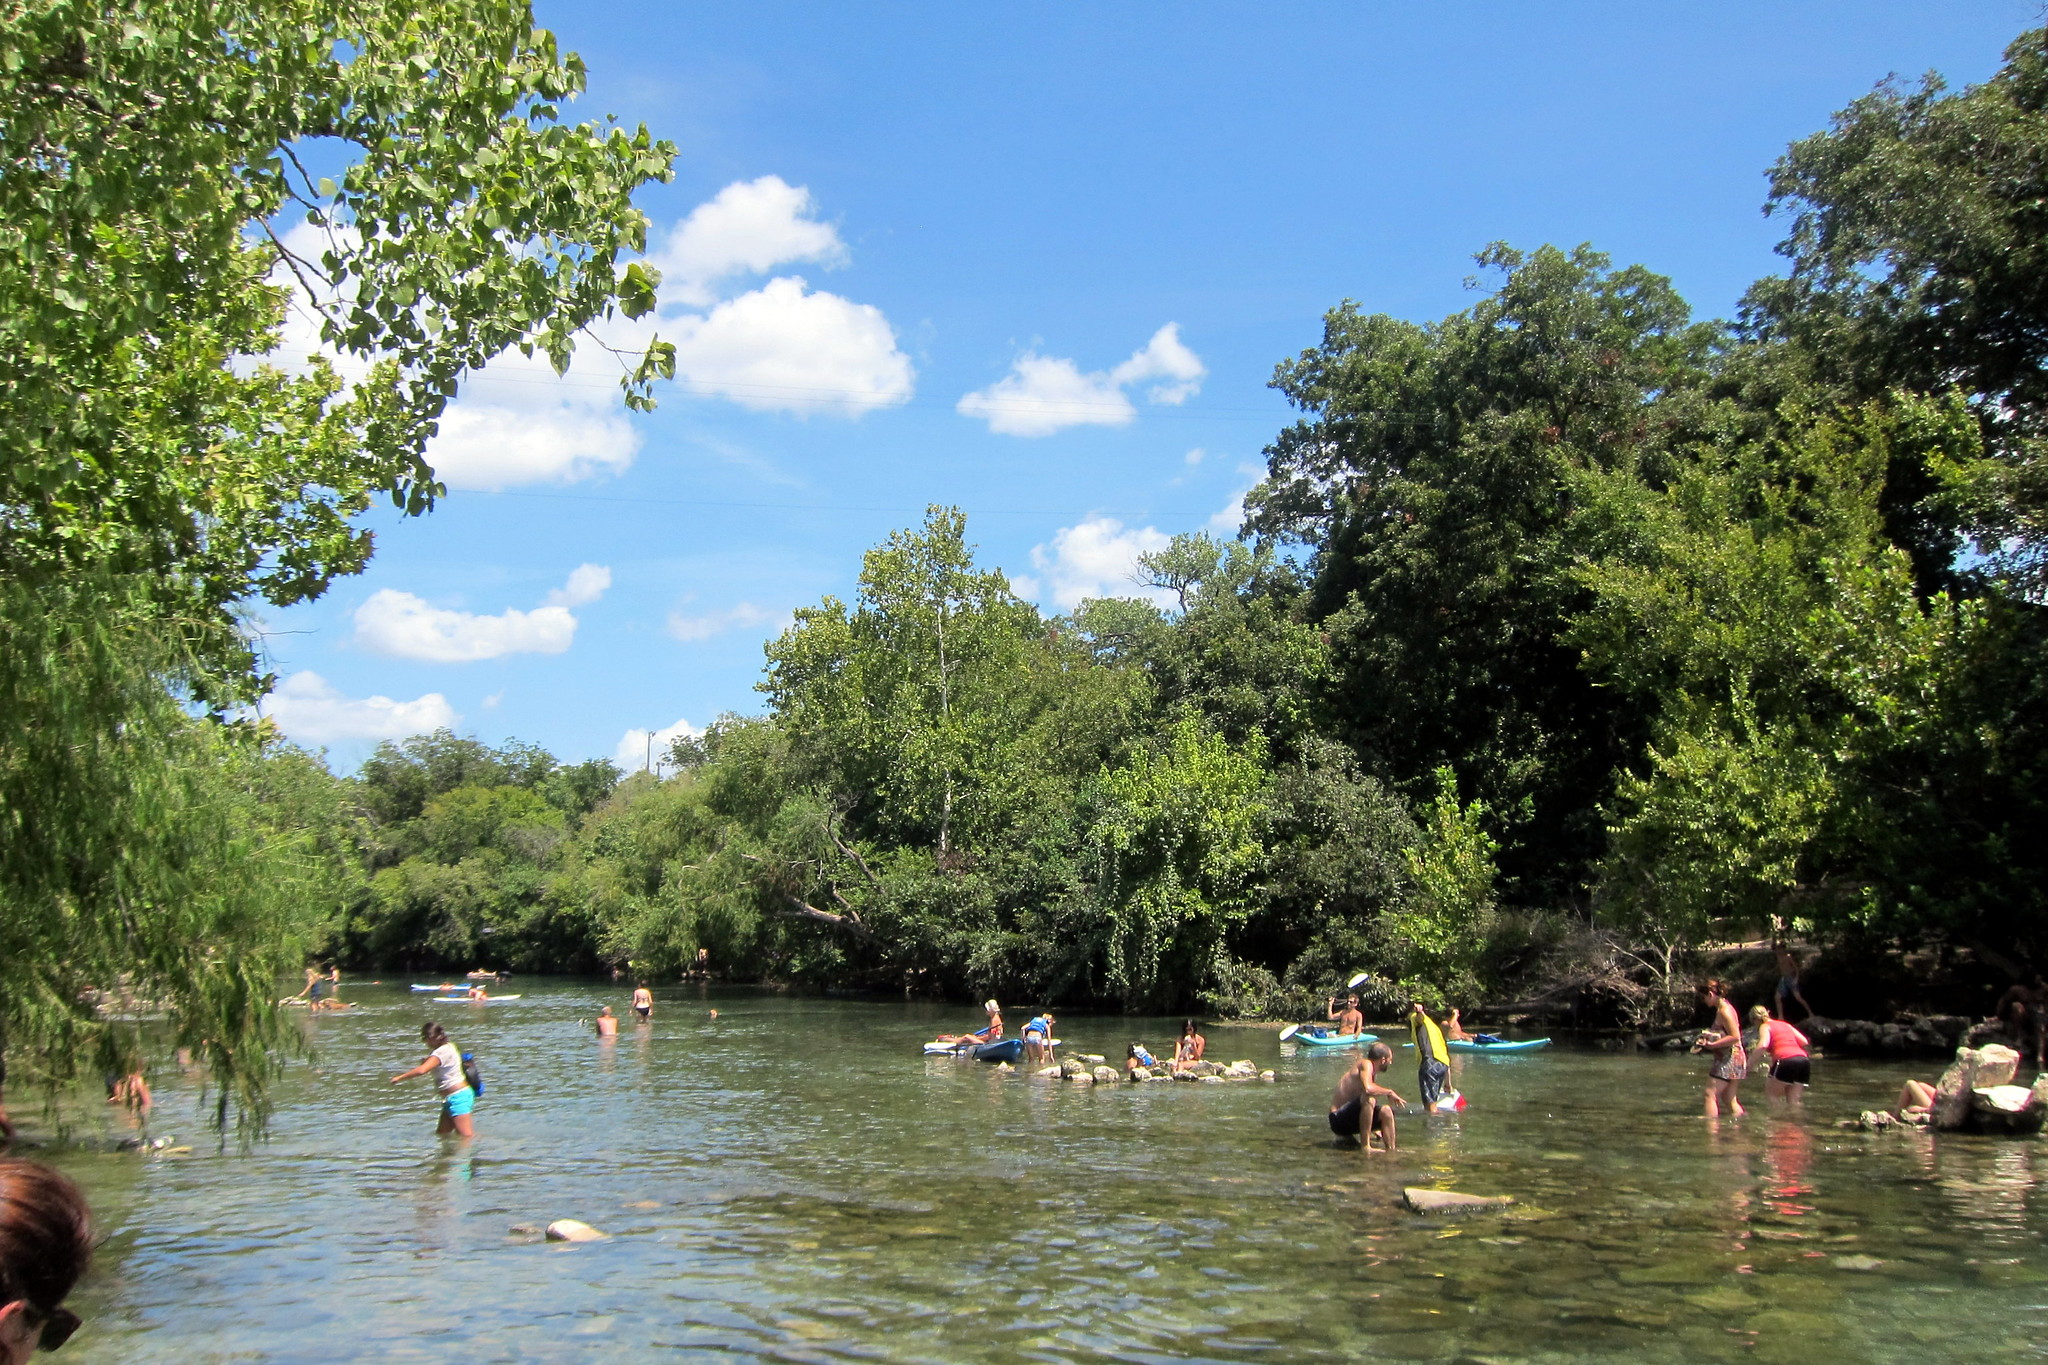 Barton Creek being enjoyed by swimmers and paddle boarders